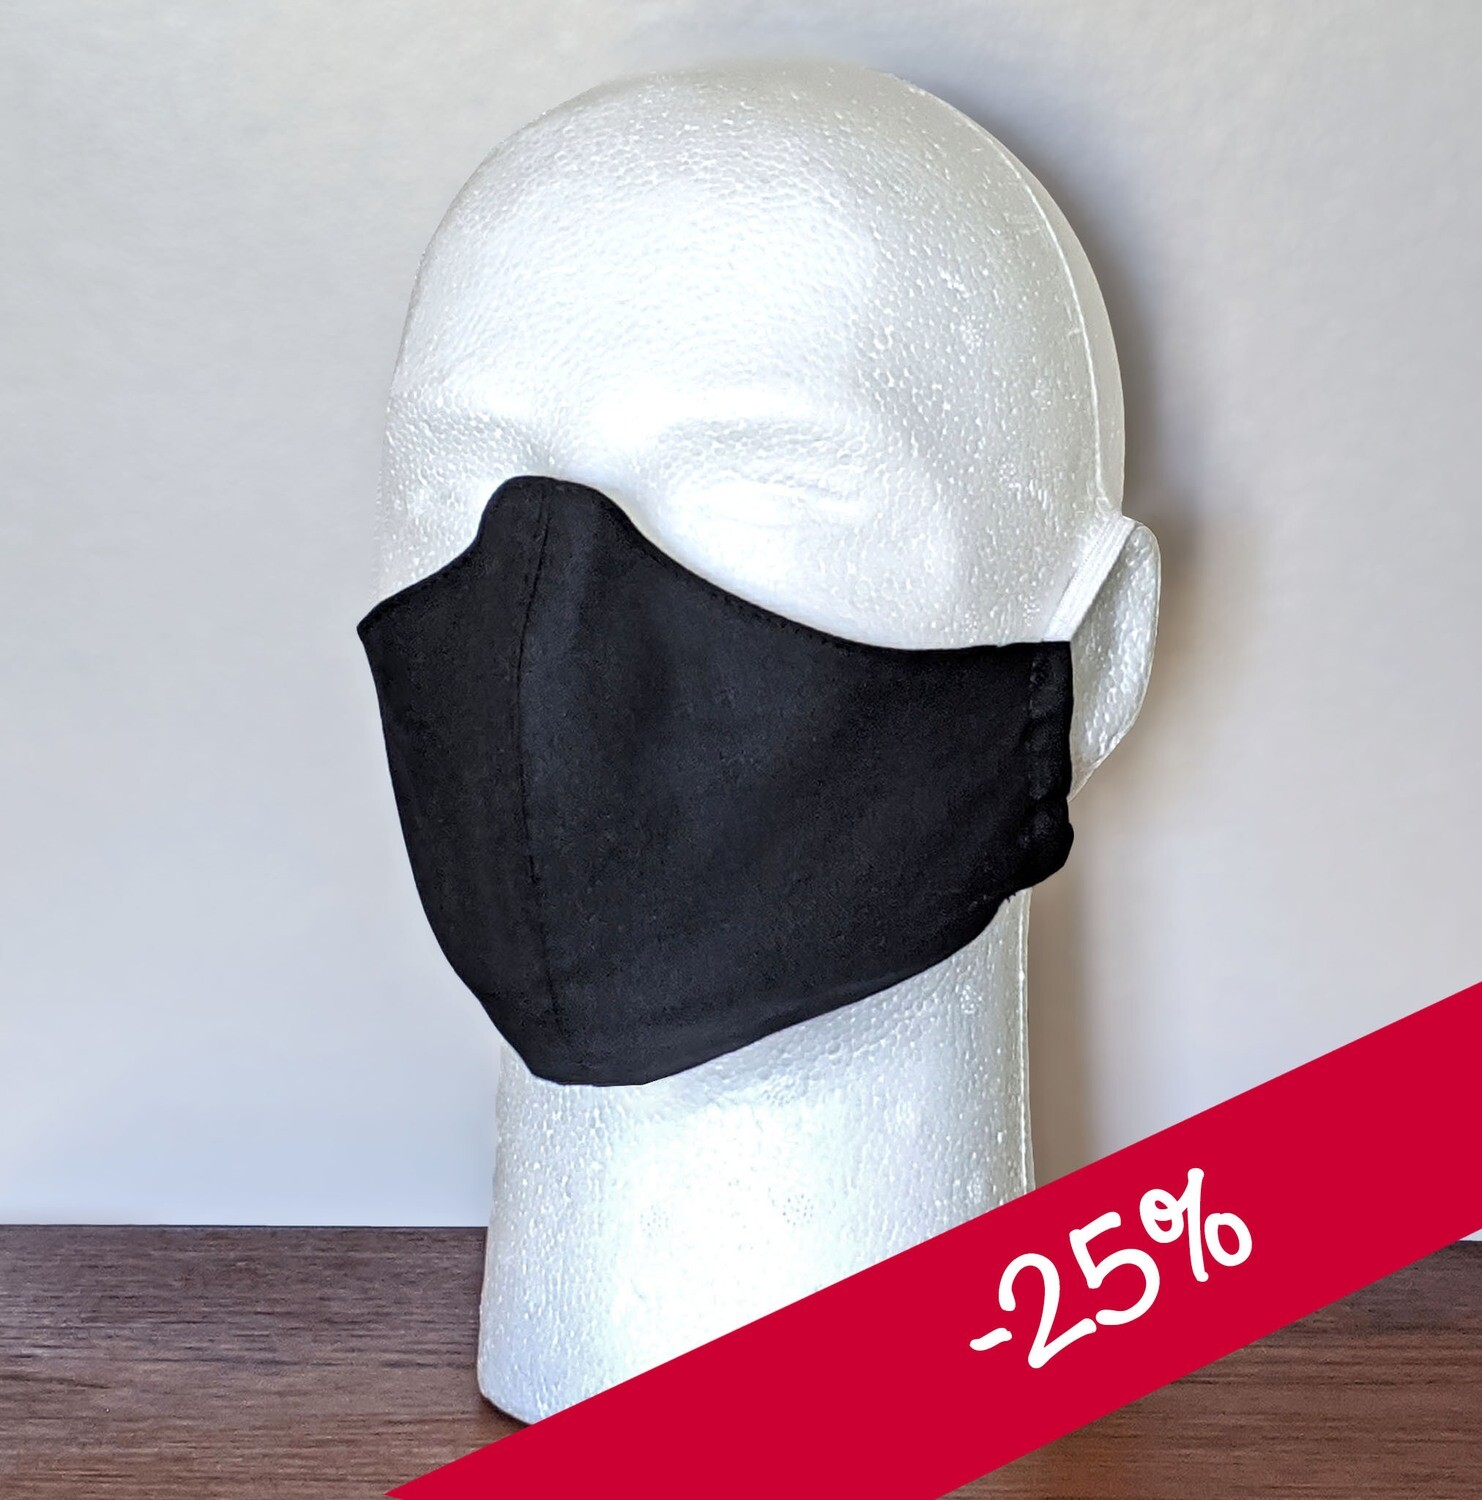 PACK of Basic Black Face Masks, Unisex, Washable, Reusable, Double Layer for Smog, Pollen, Dust, Smoke. Made in USA